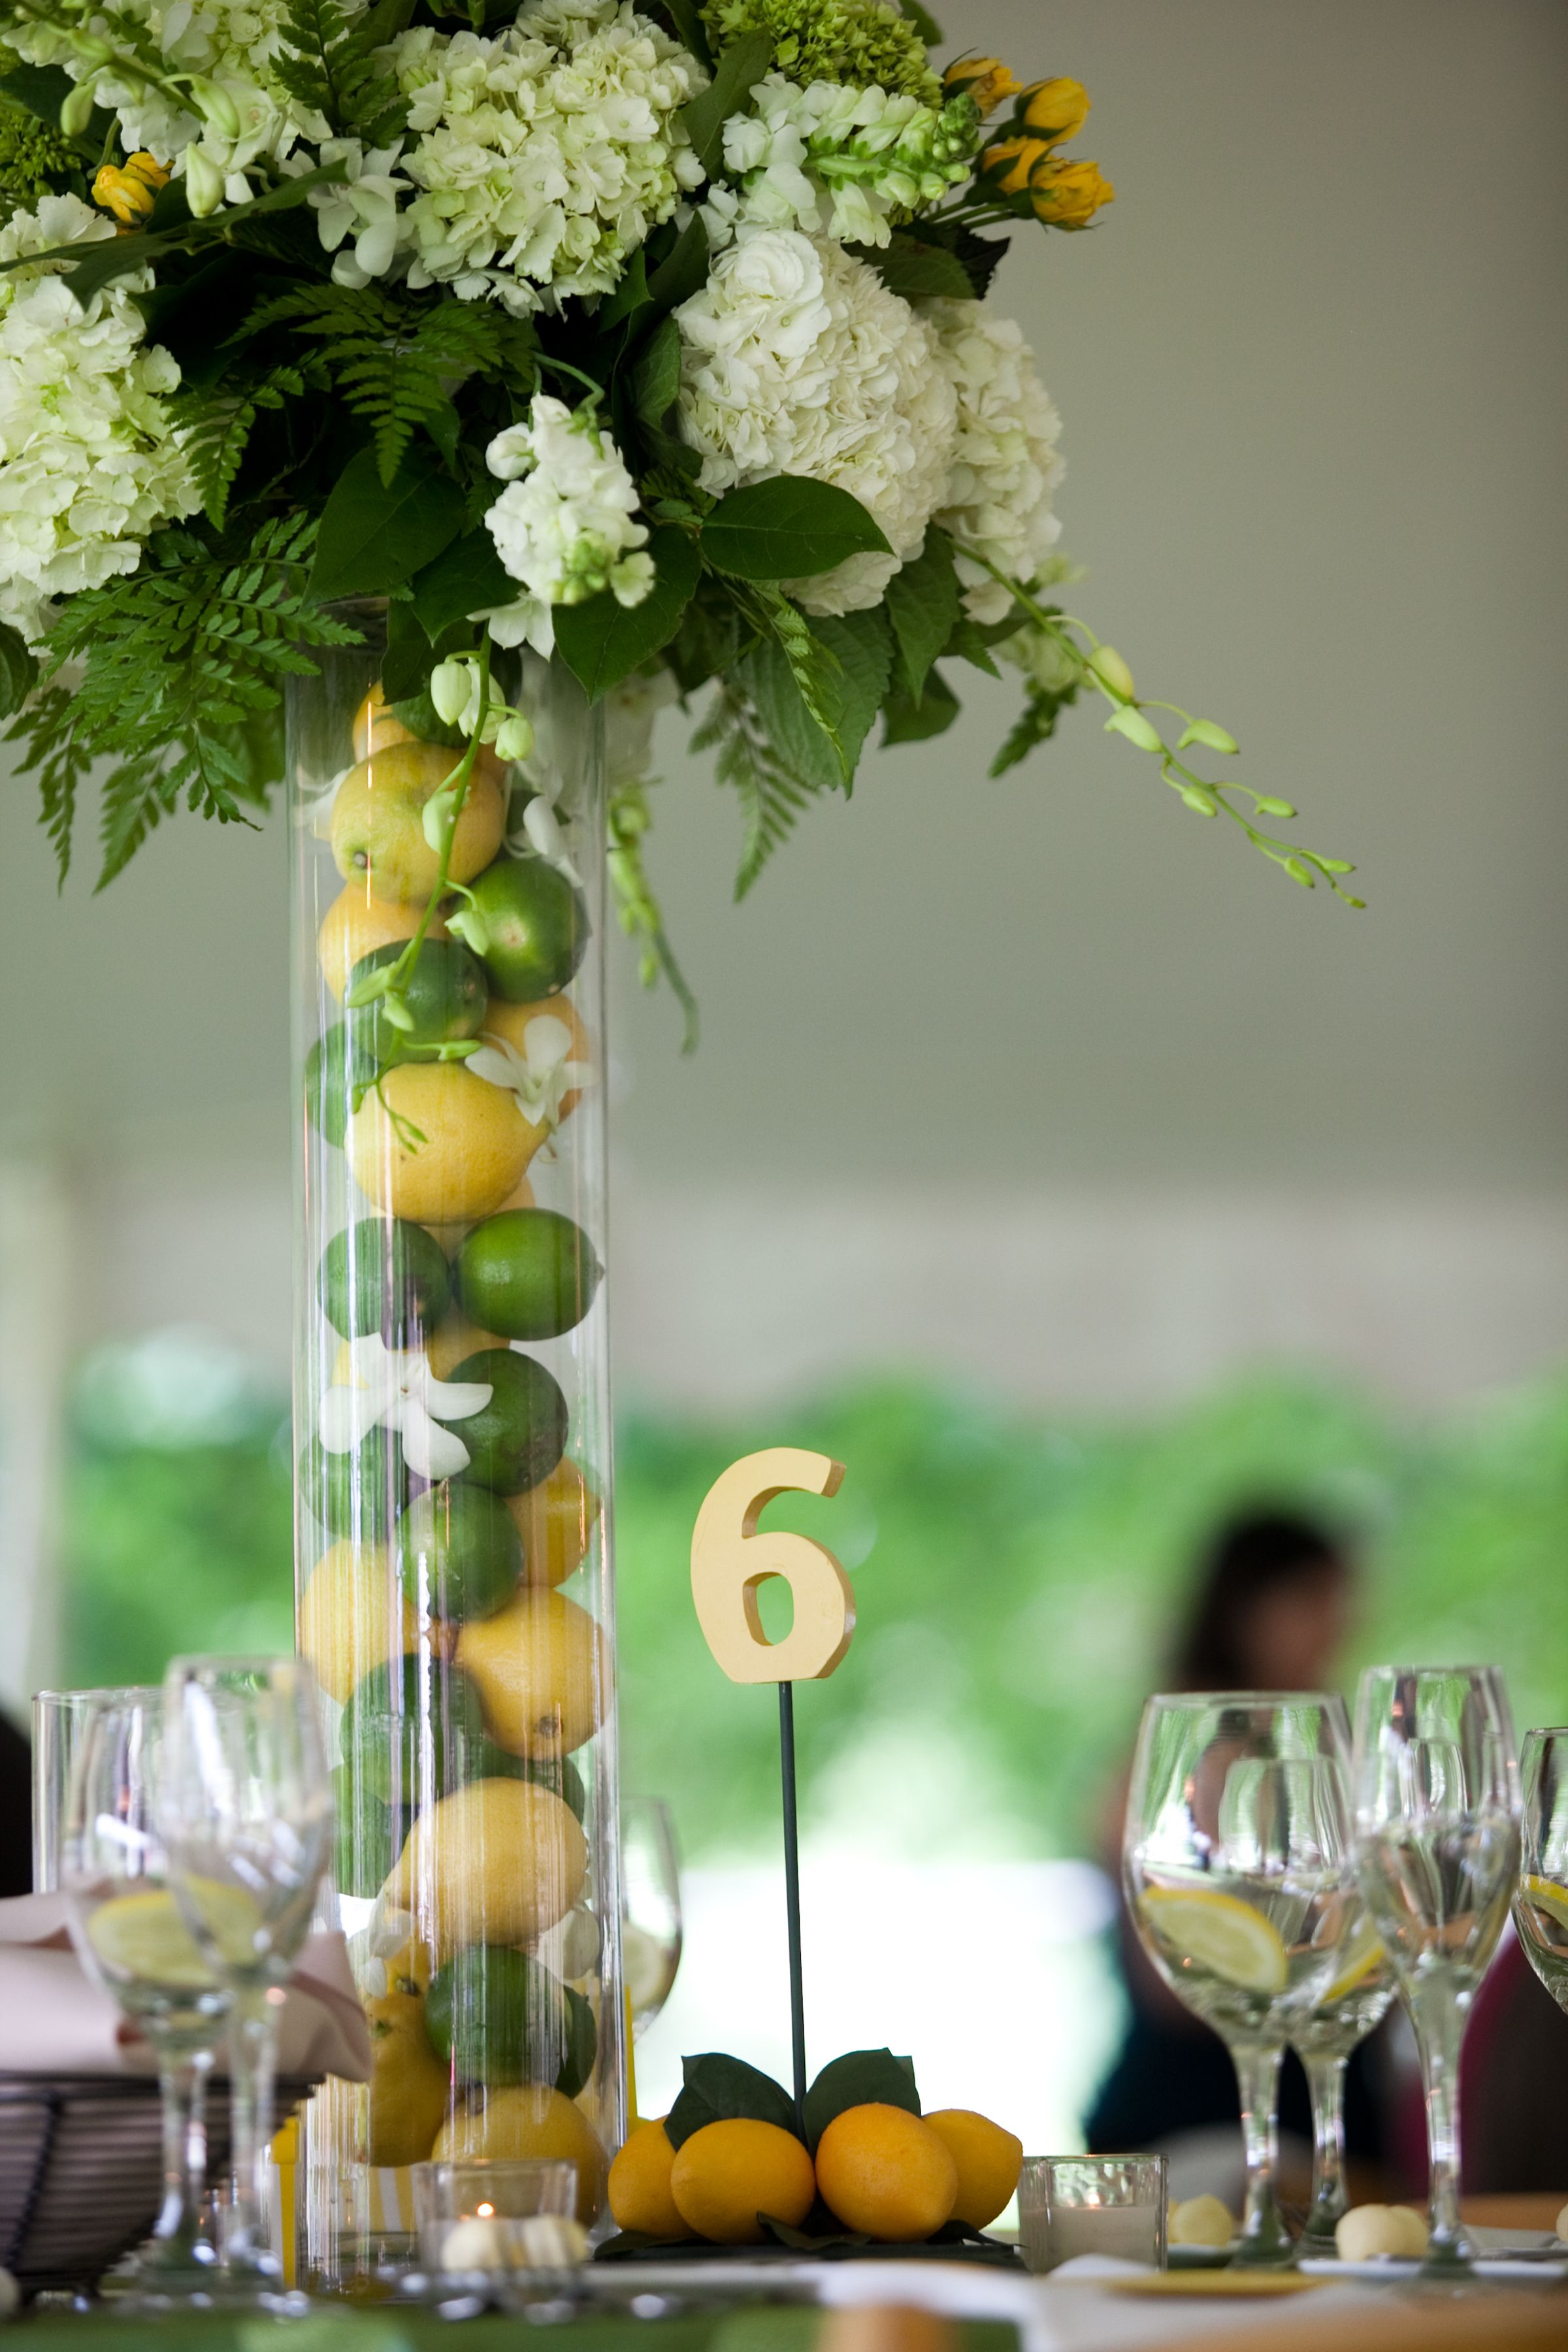 Fruit Accents I Love The Tall Vase With The Lemons And